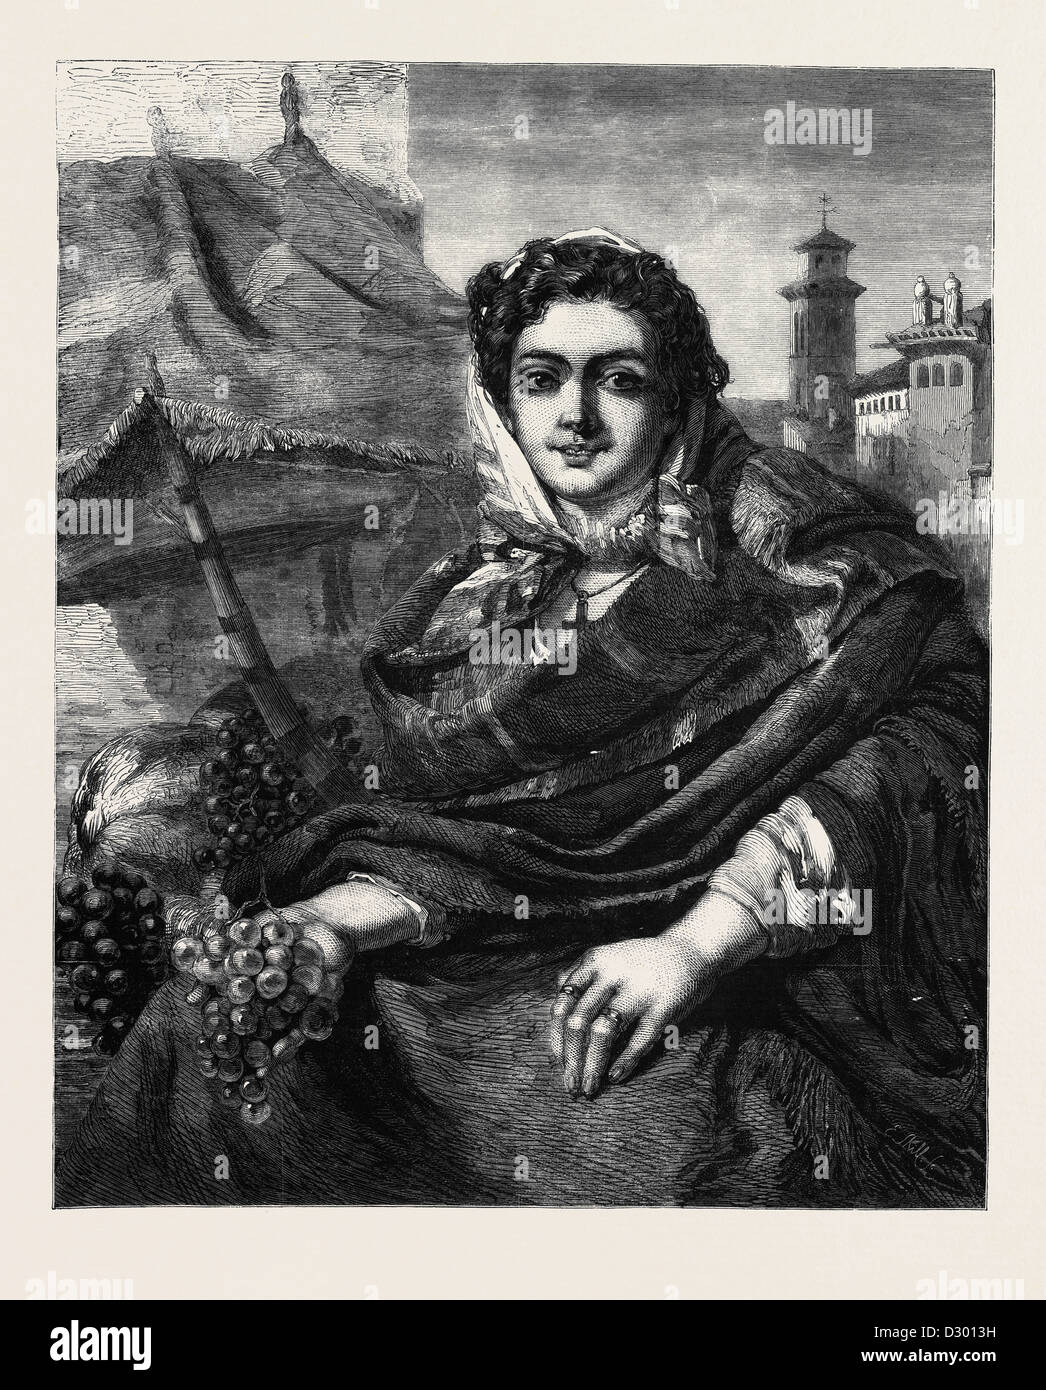 THE GRAPESELLER BY J. PHILLIP R.A. IN MR. FLATOU'S COLLECTION - Stock Image